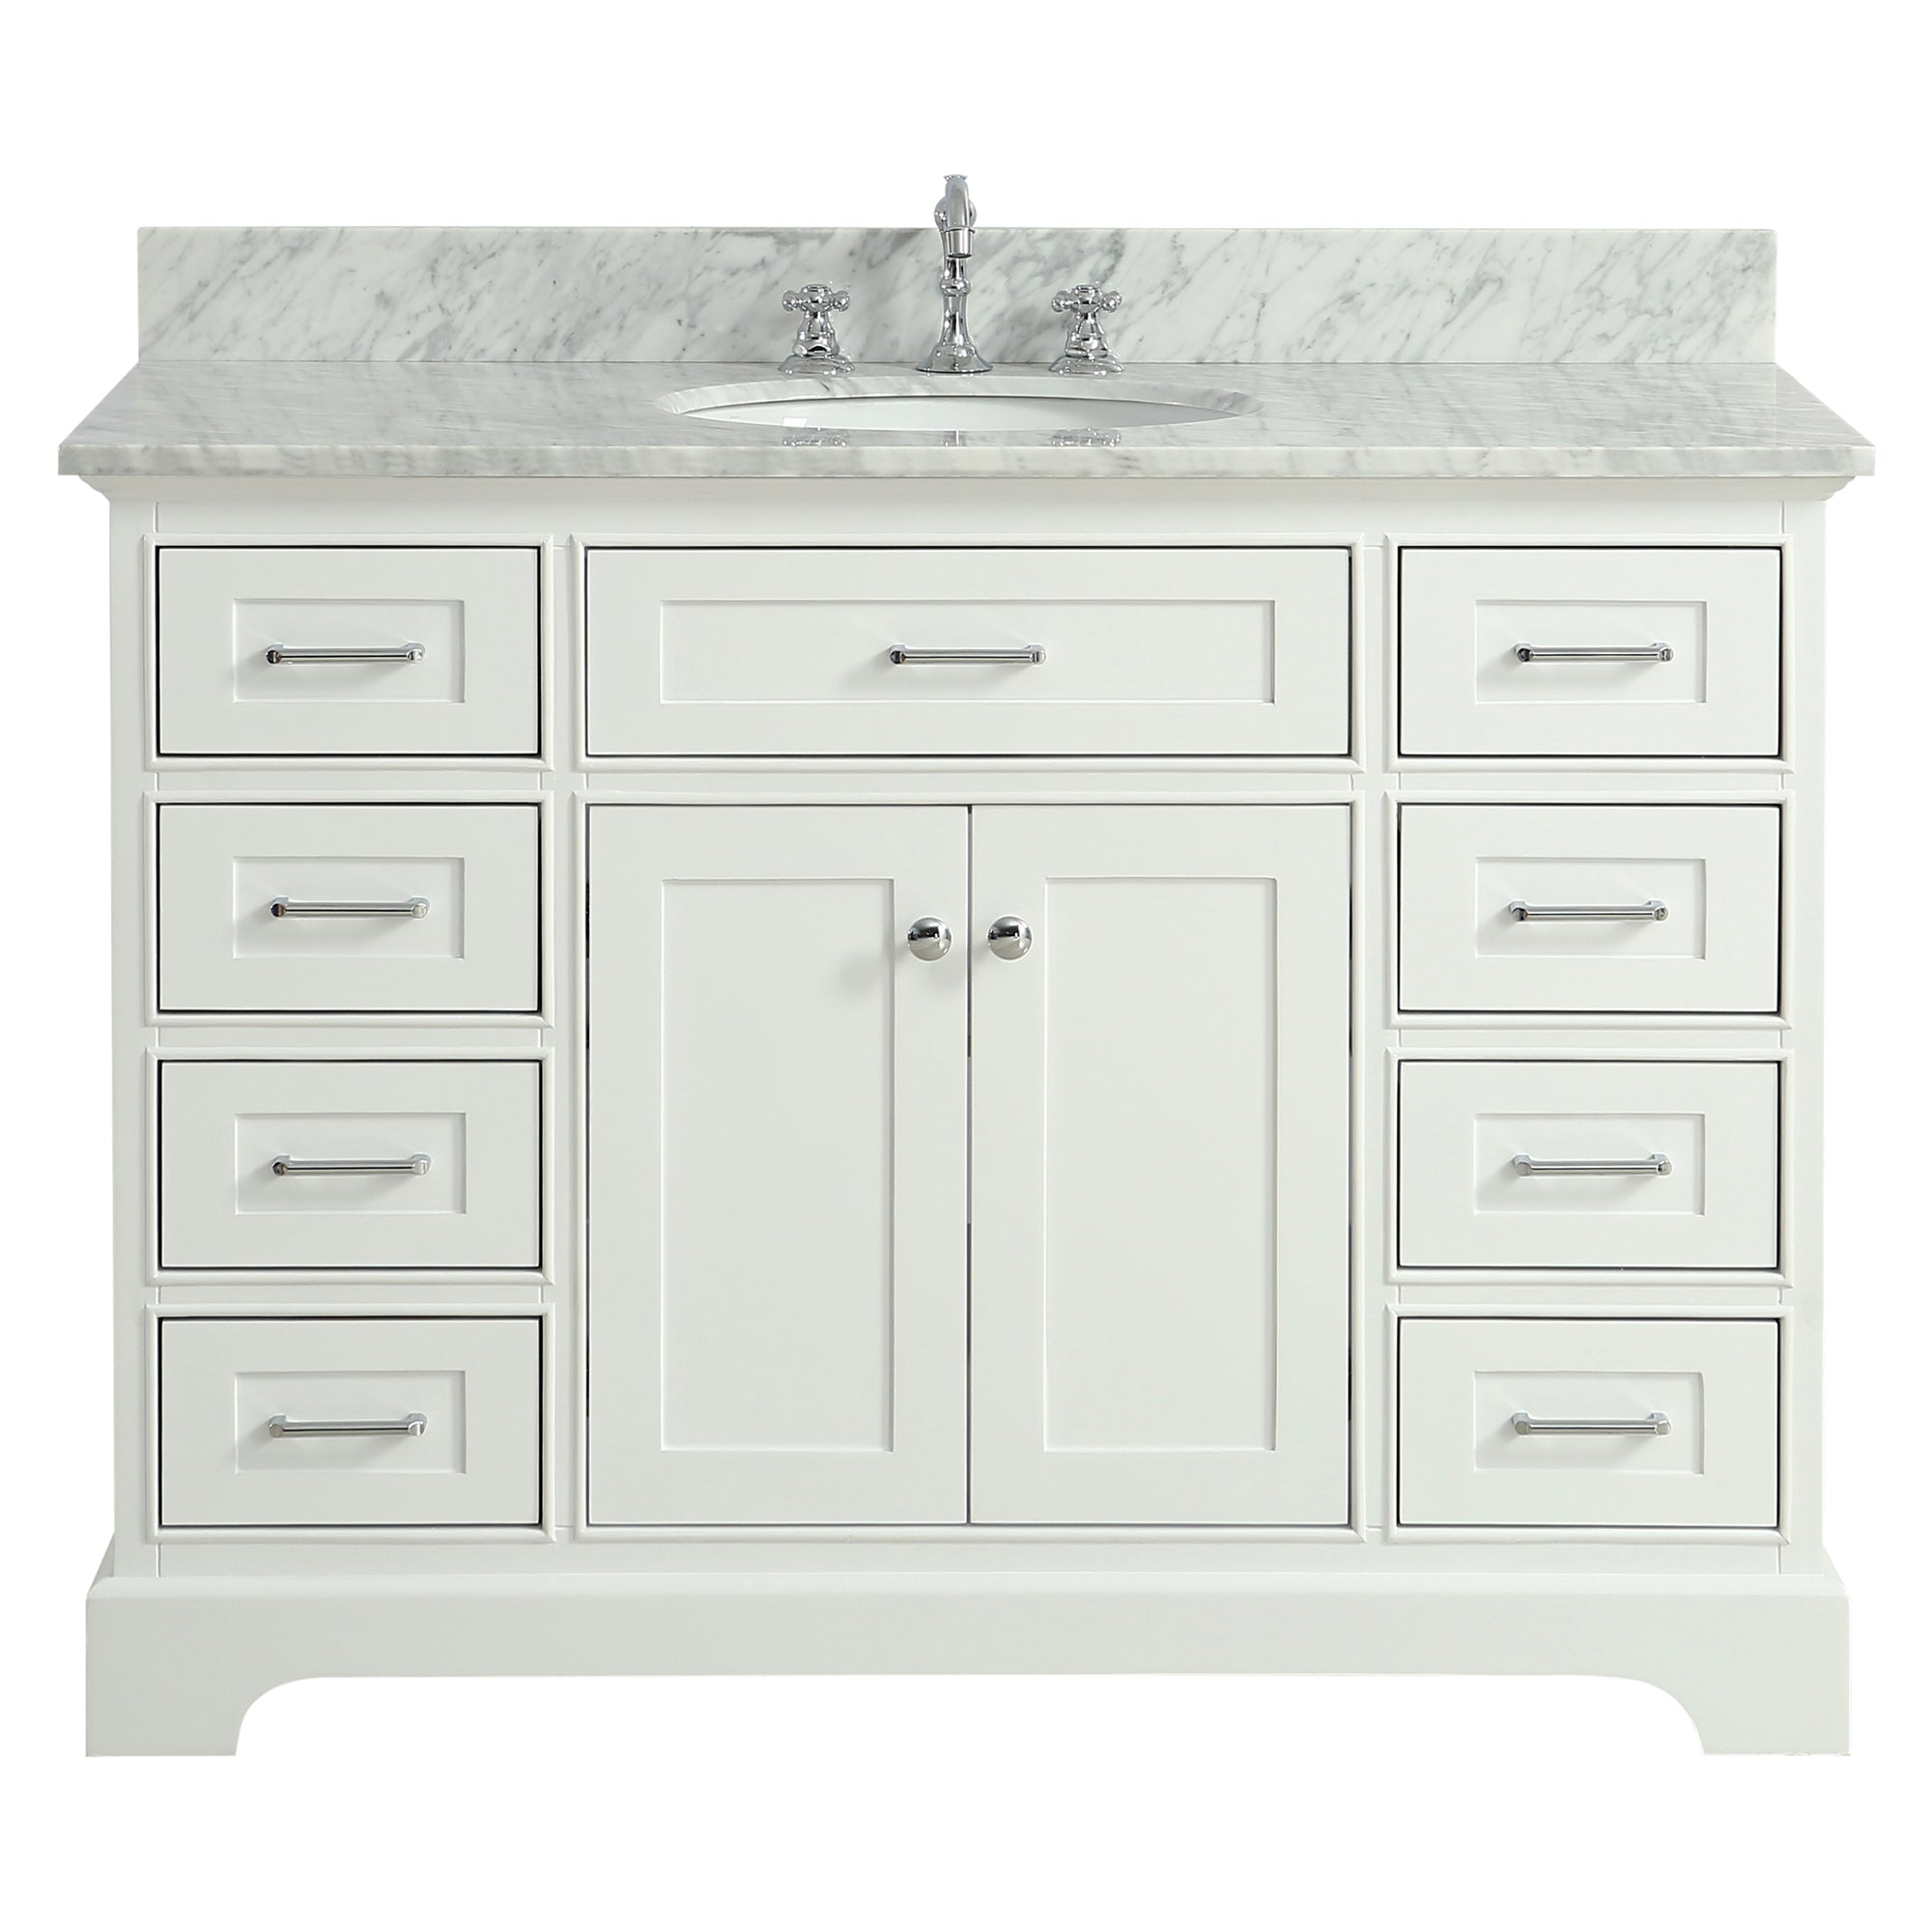 vanity two bathroom white sweet modern vanities grey satinless in with square large b doors well tops mirror elegant granite flooring and decorate excellent double designs cool furniture as single taps sink